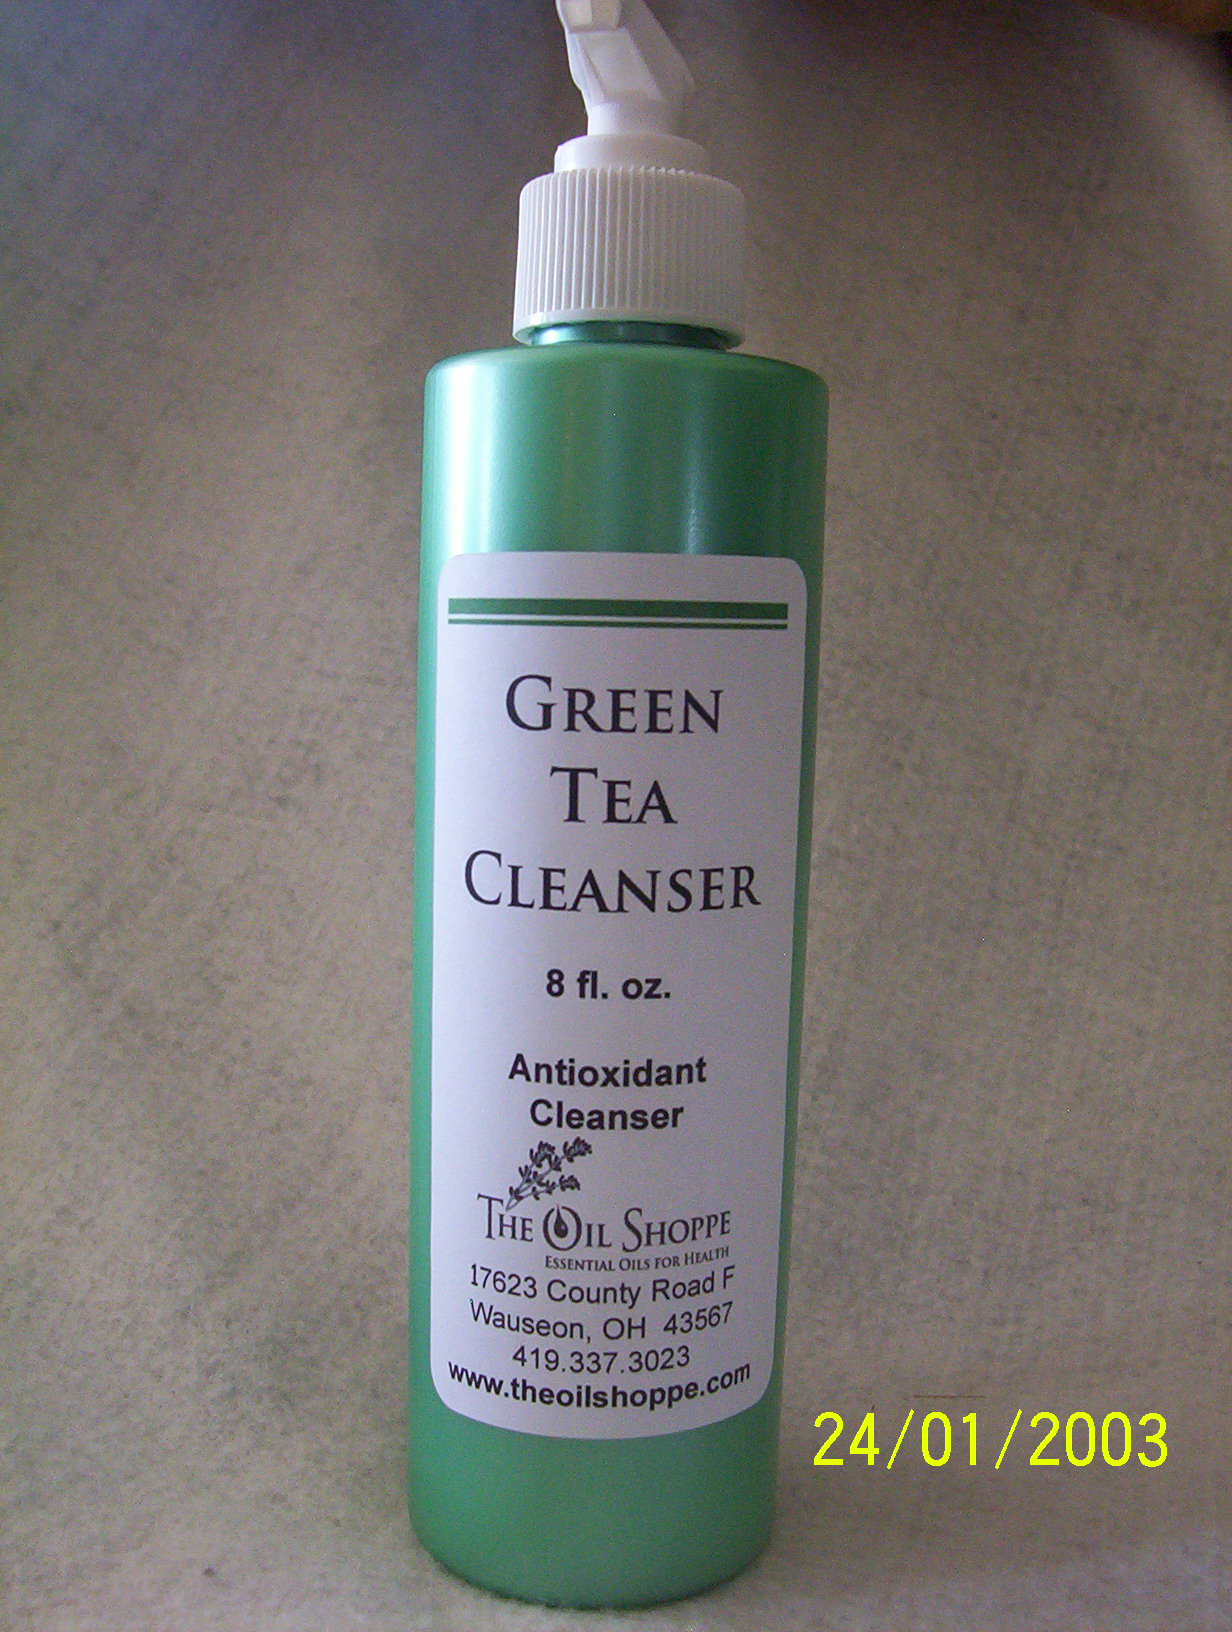 Cleanser - Green Tea Cleanser